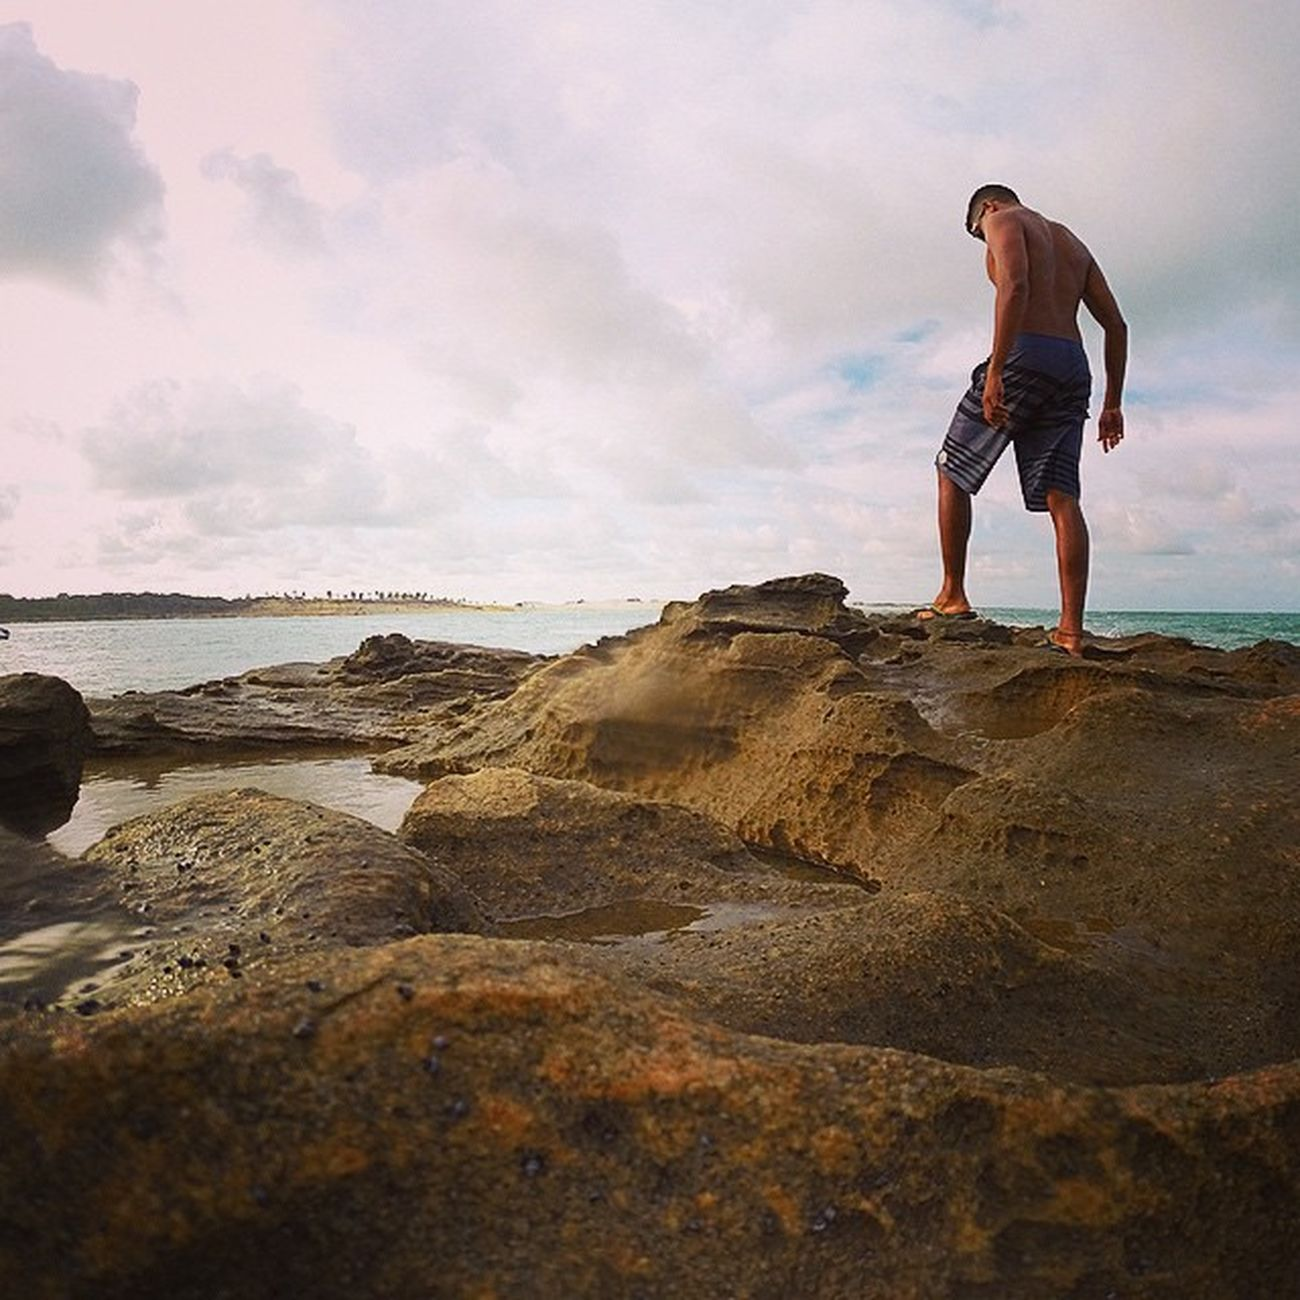 Namorando com a paz! 🌊☁️🌀 Allallauu Gopro Goprosurf Goprohero4 Goprobrasil Goprophotooftheday Paraíso Rapaduratimes Phototheday Avidaqueeuqueria Session Surfstorm Surfingiseverything Lifestyle LiveTheSearch Bigswell Mar